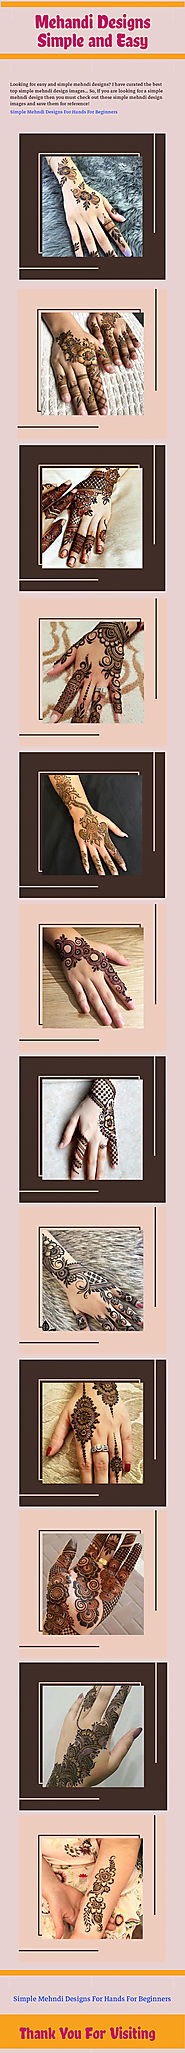 Mehandi Designs Simple and Easy | Infographic